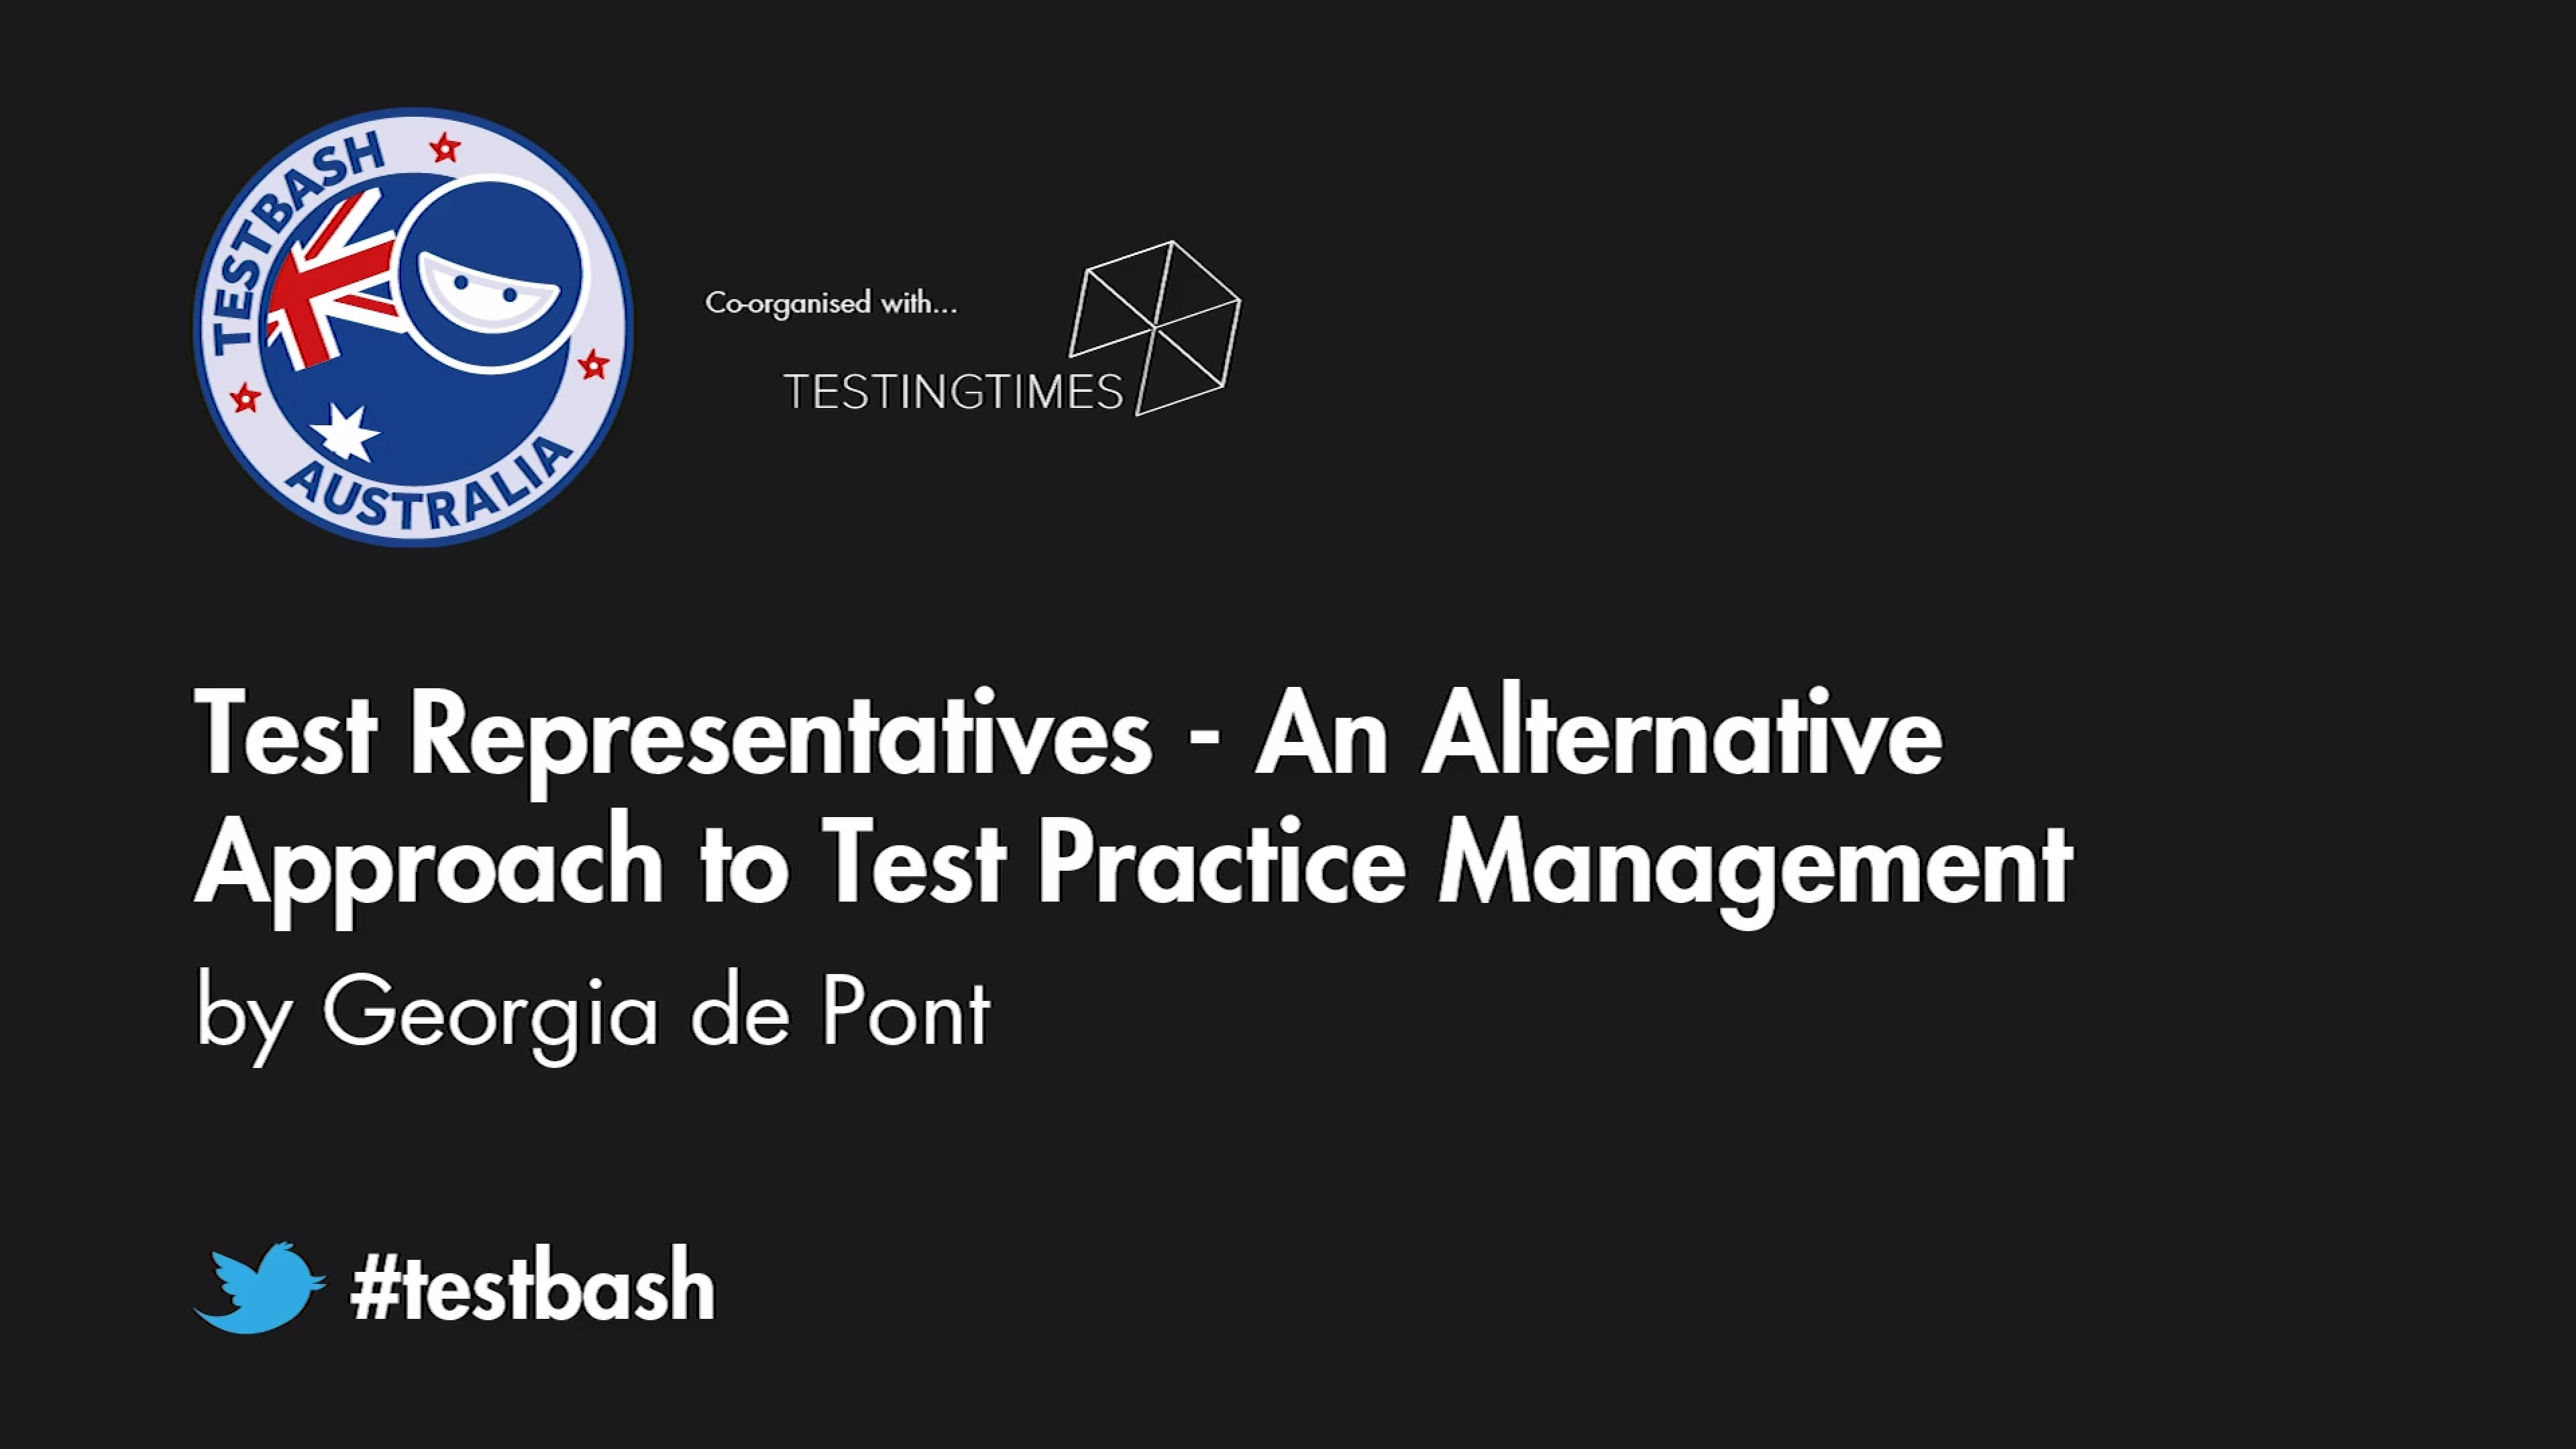 Test Representatives: An Alternative Approach to Test Practice Management - Georgia de Pont